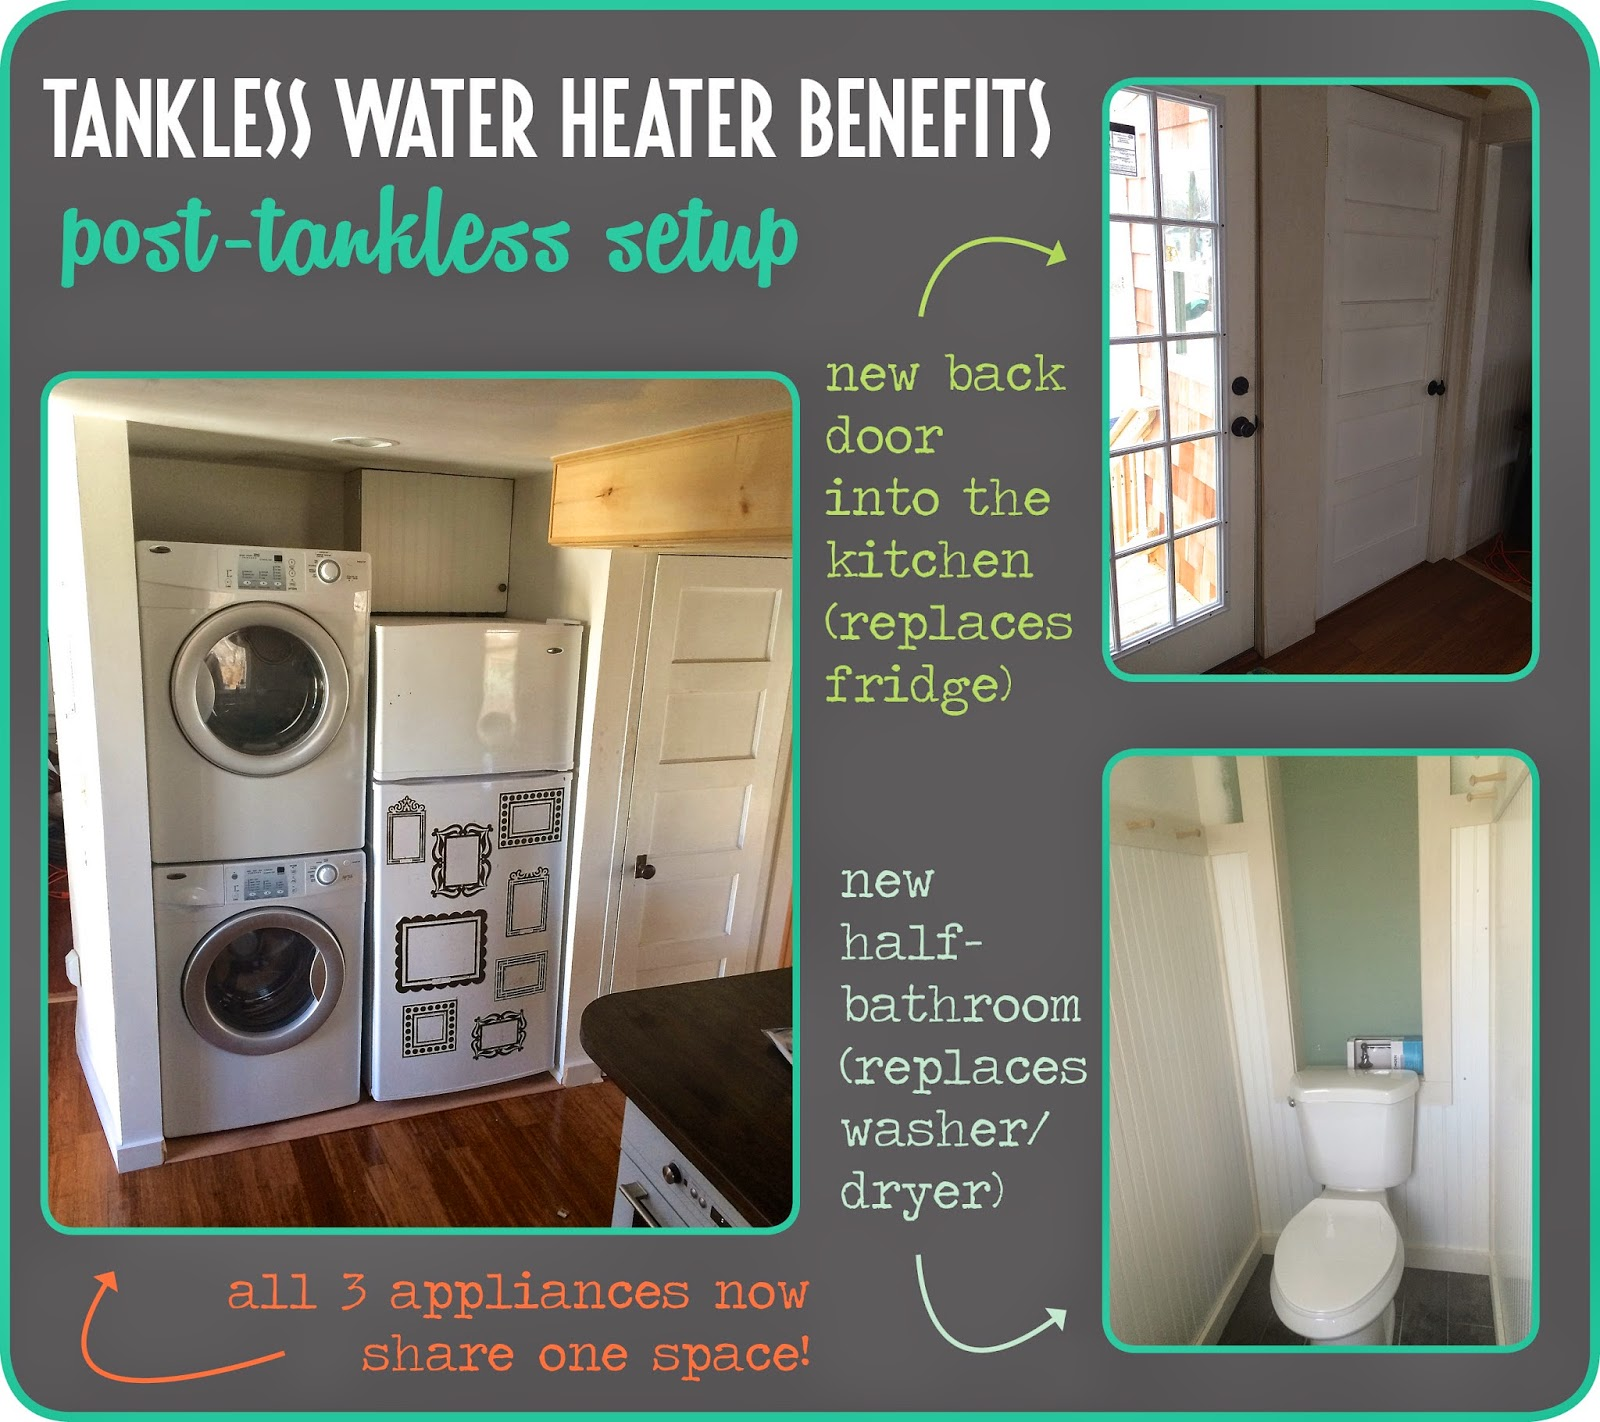 Benefits of a tankless water heater by thrifterindisguise.com